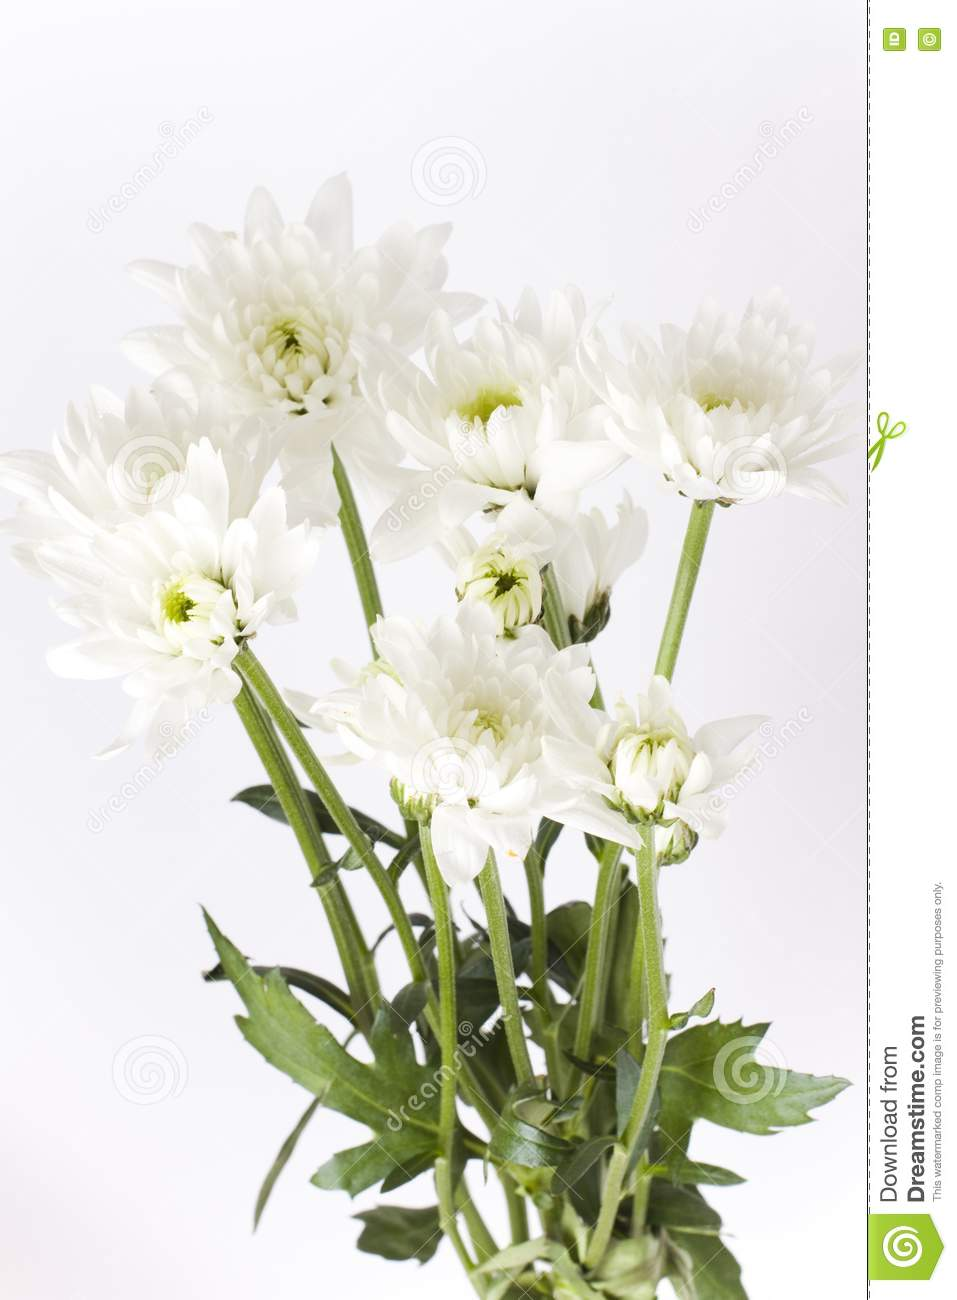 how to grow carnations from stems